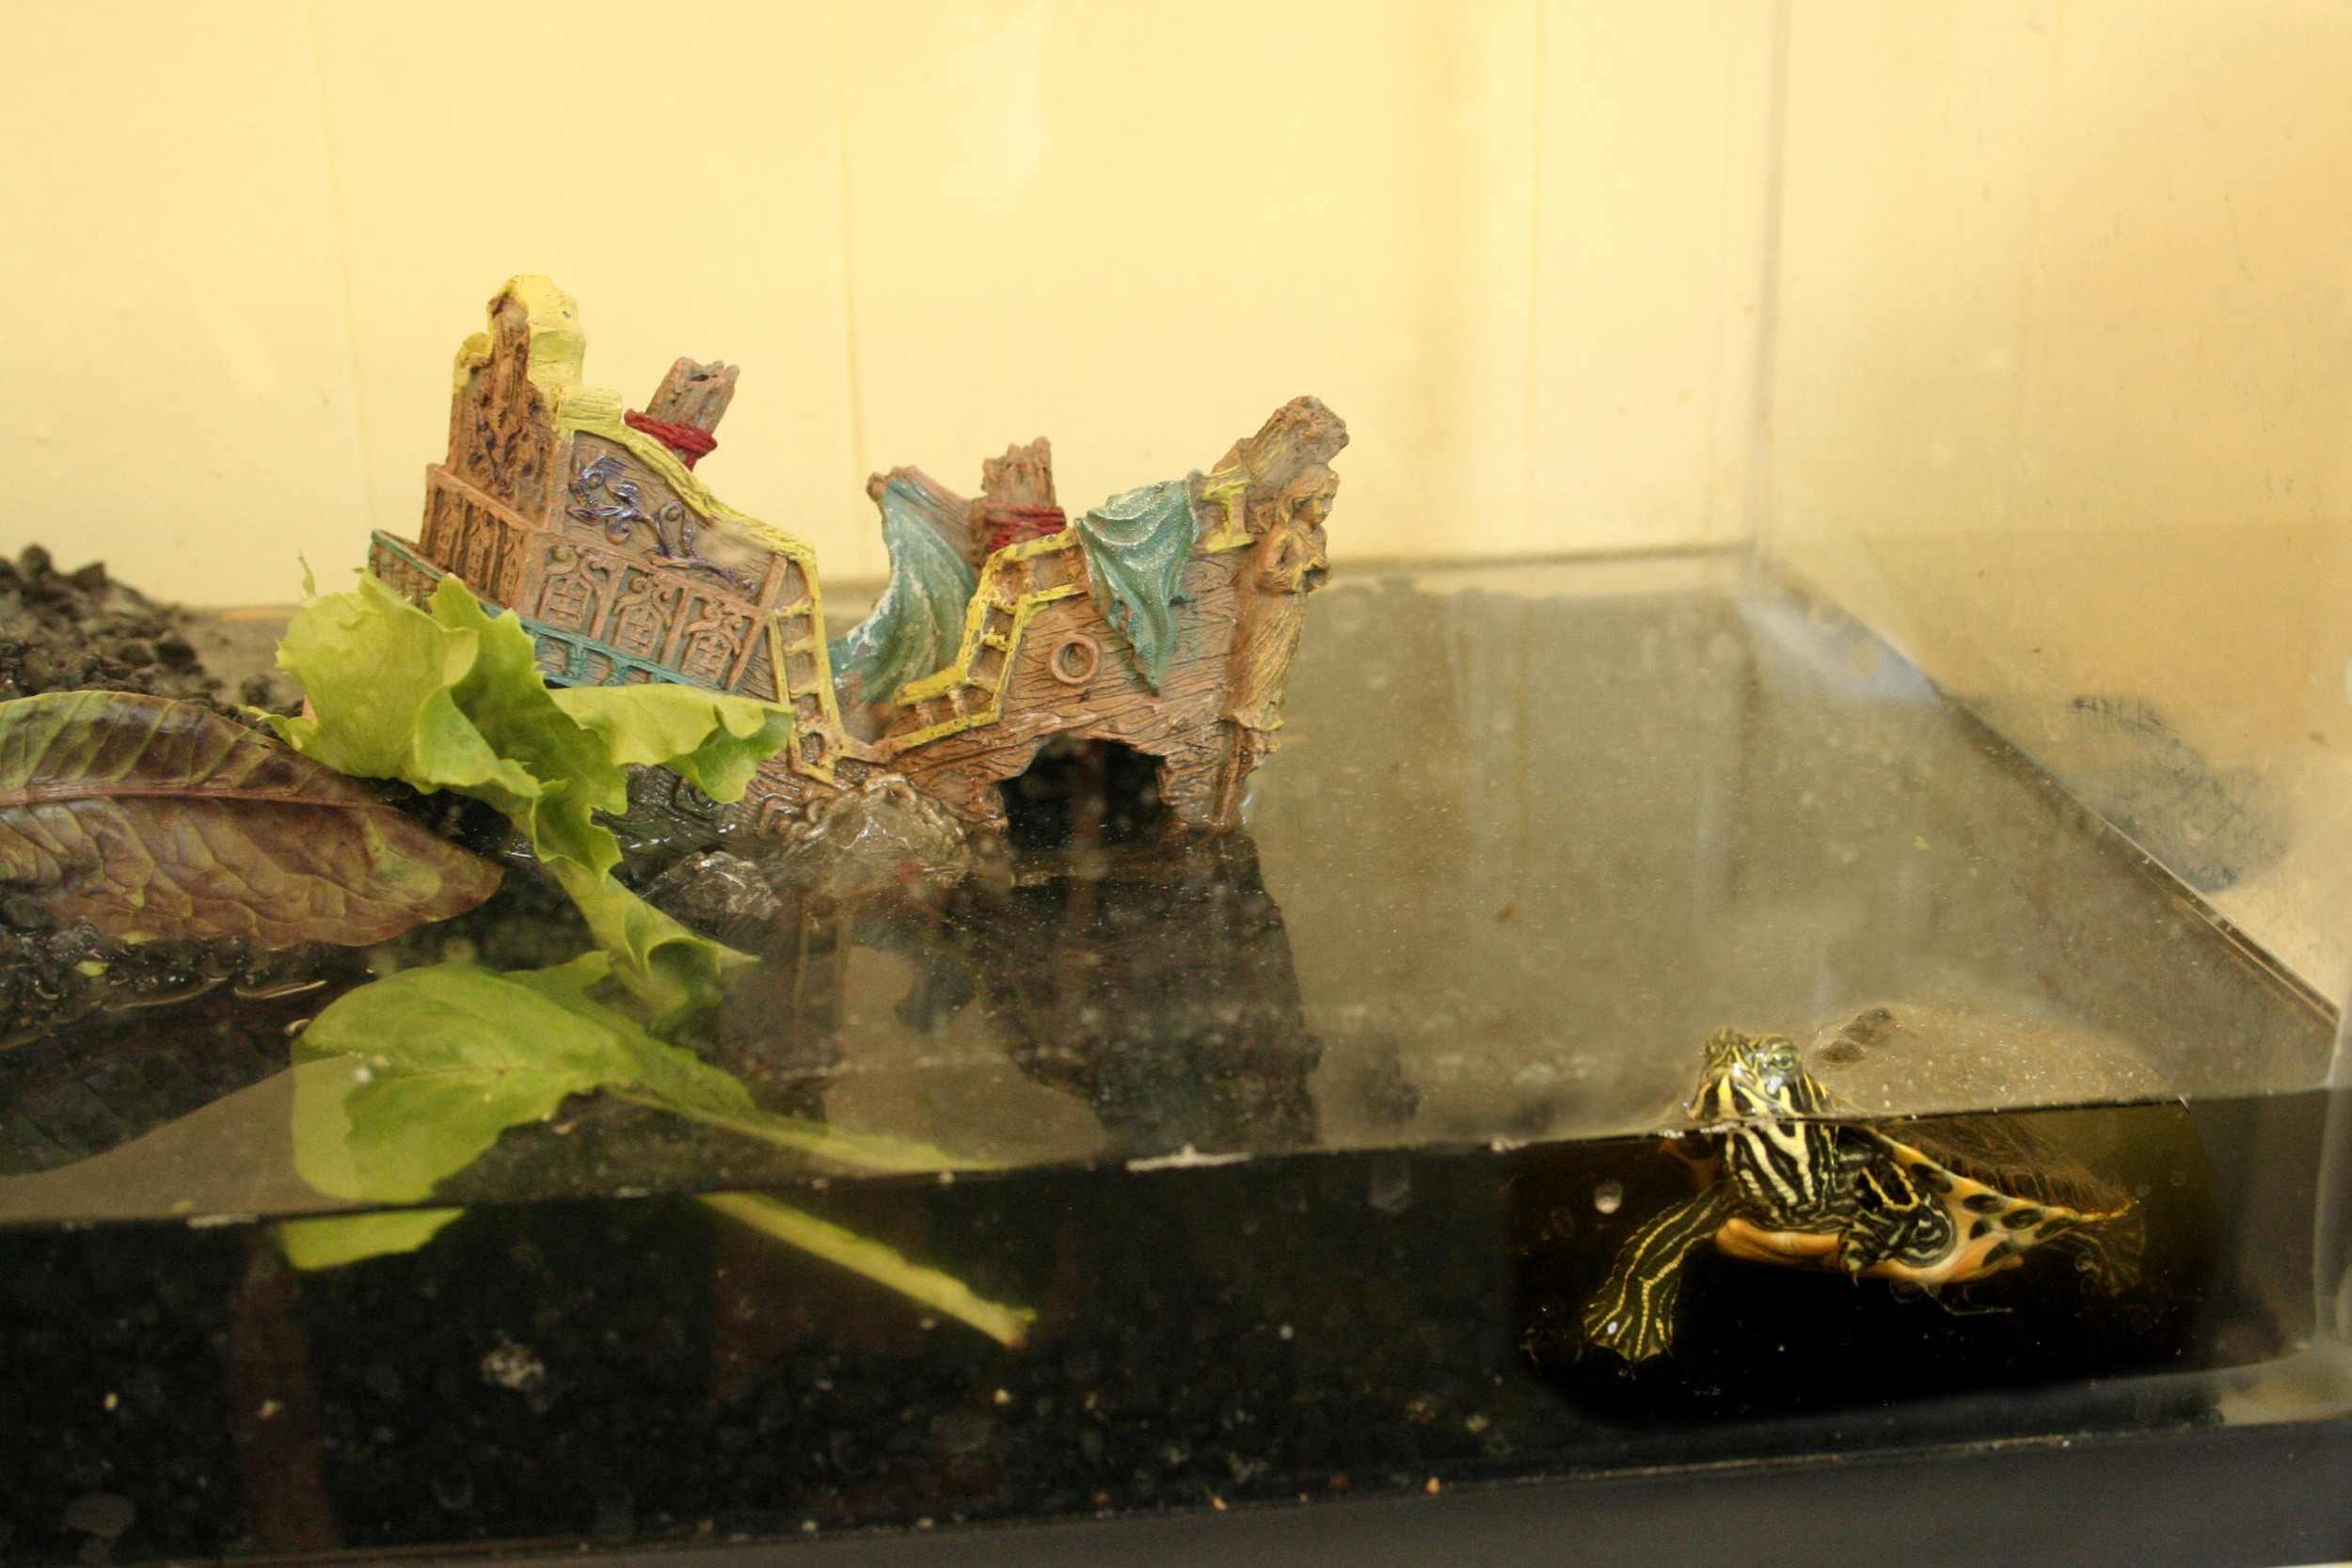 77. i can't tell if paul the turtle likes the place or not.